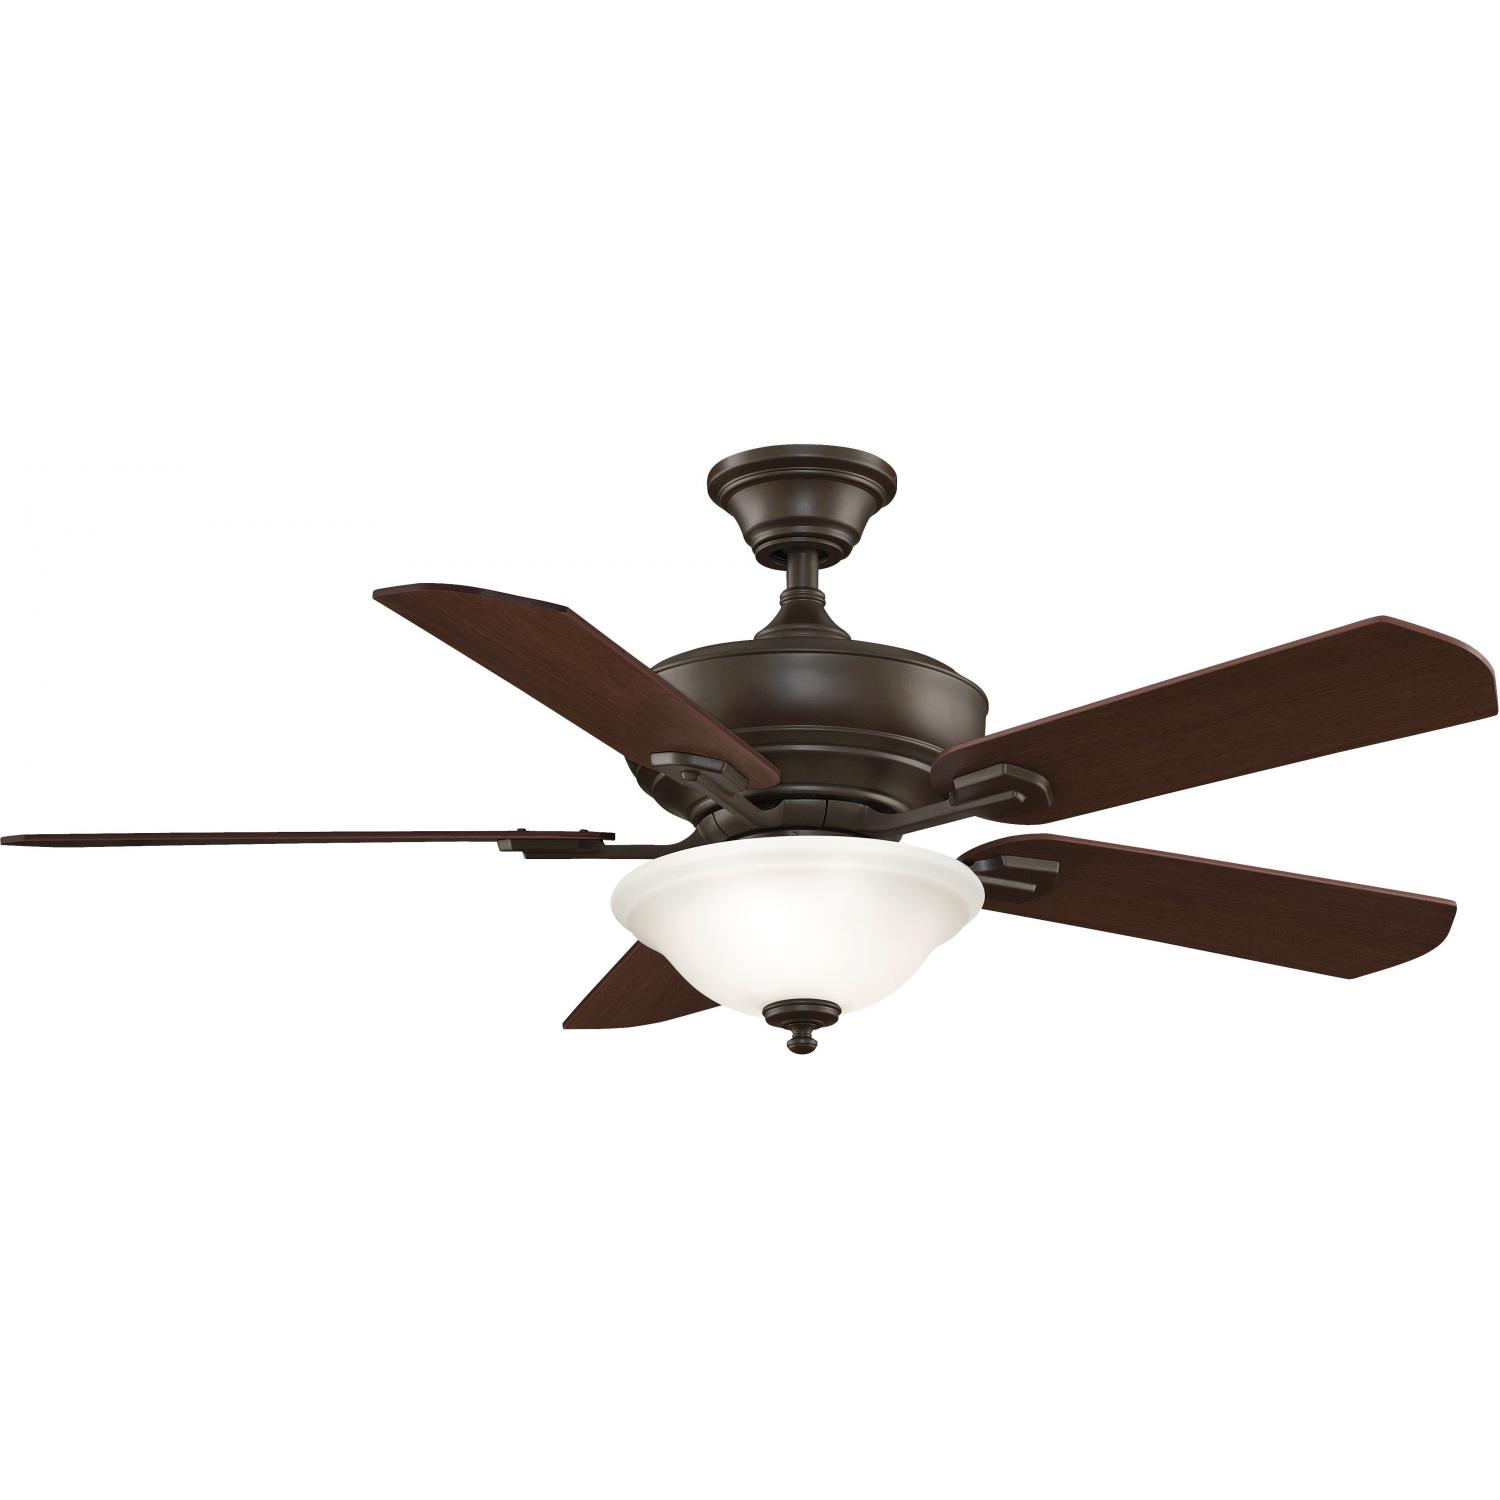 Fanimation Camhaven 52-Inch Indoor Ceiling Fan - Oil Rubbed Bronze 2870728